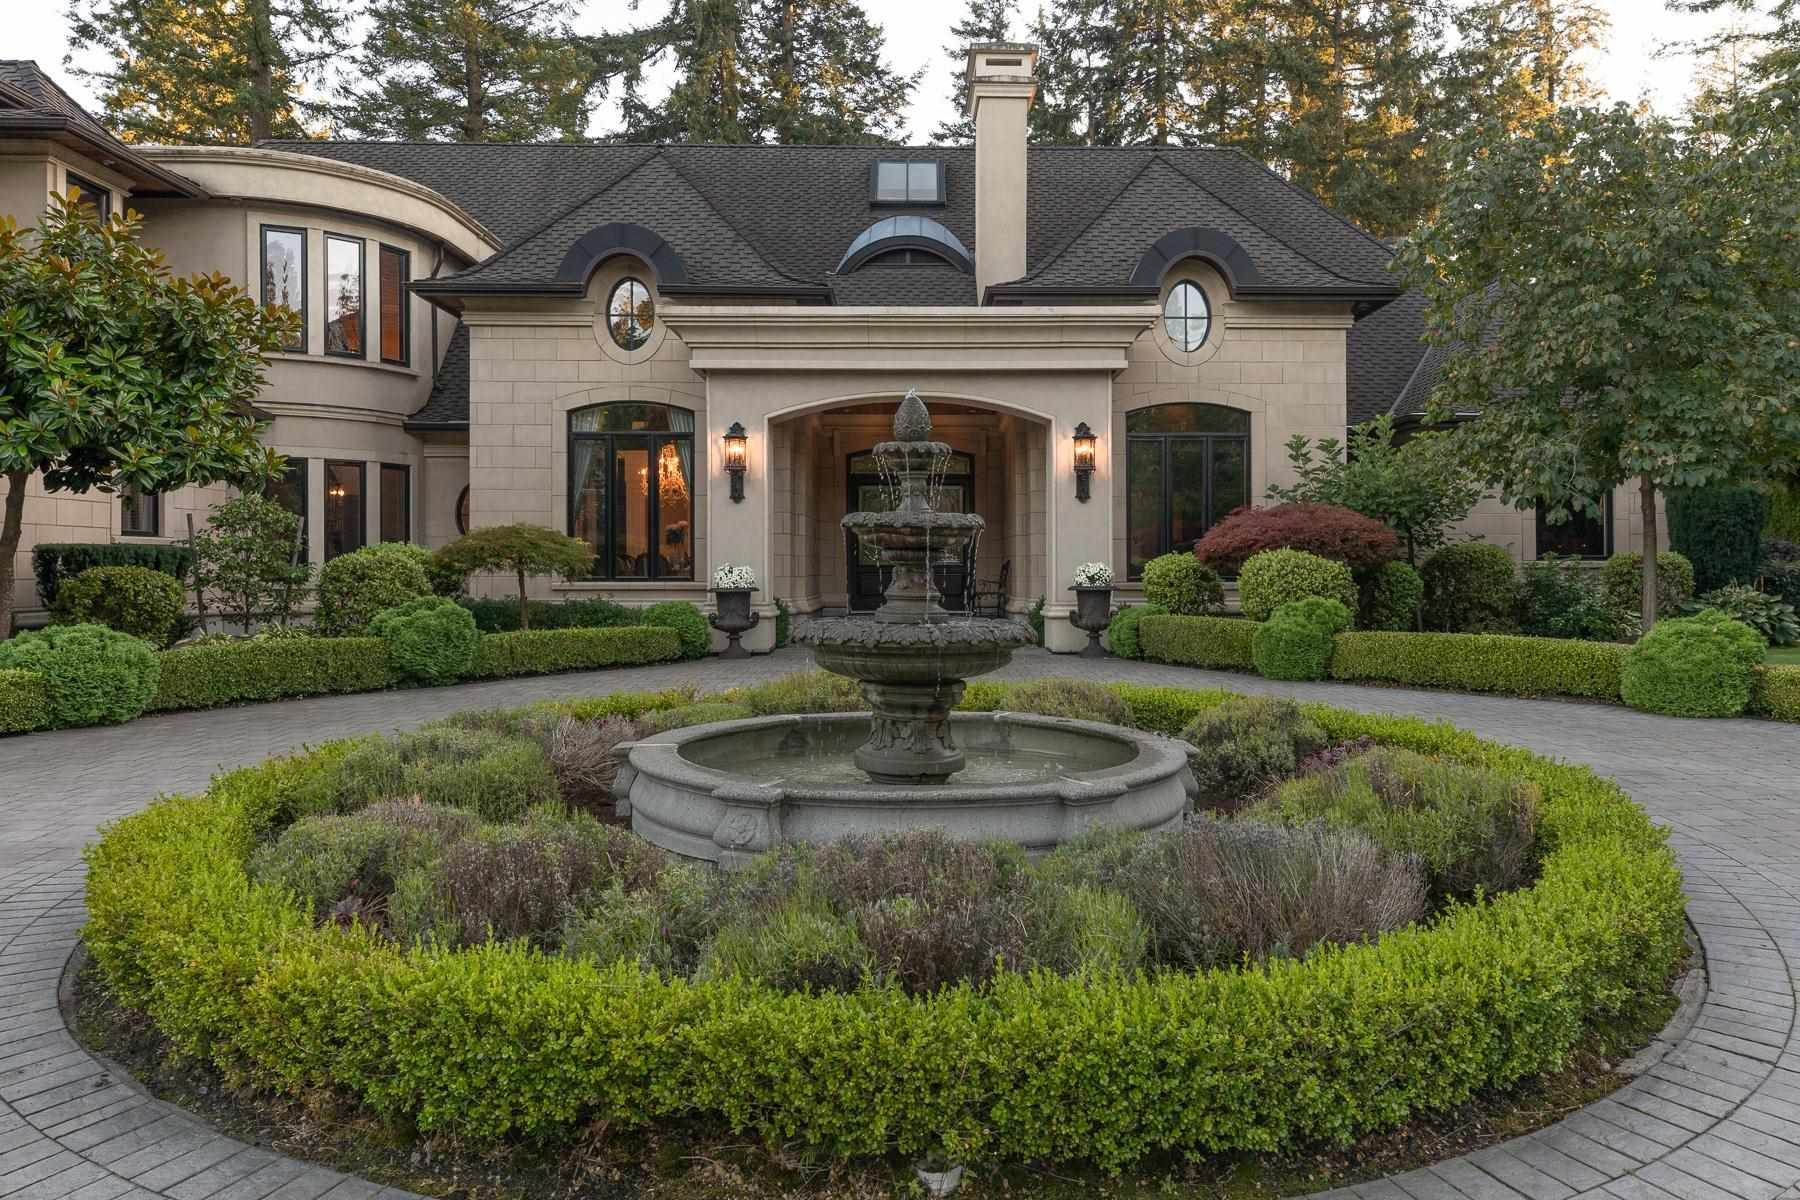 """Main Photo: 13322 25 Avenue in Surrey: Elgin Chantrell House for sale in """"CHANTRELL"""" (South Surrey White Rock)  : MLS®# R2605220"""